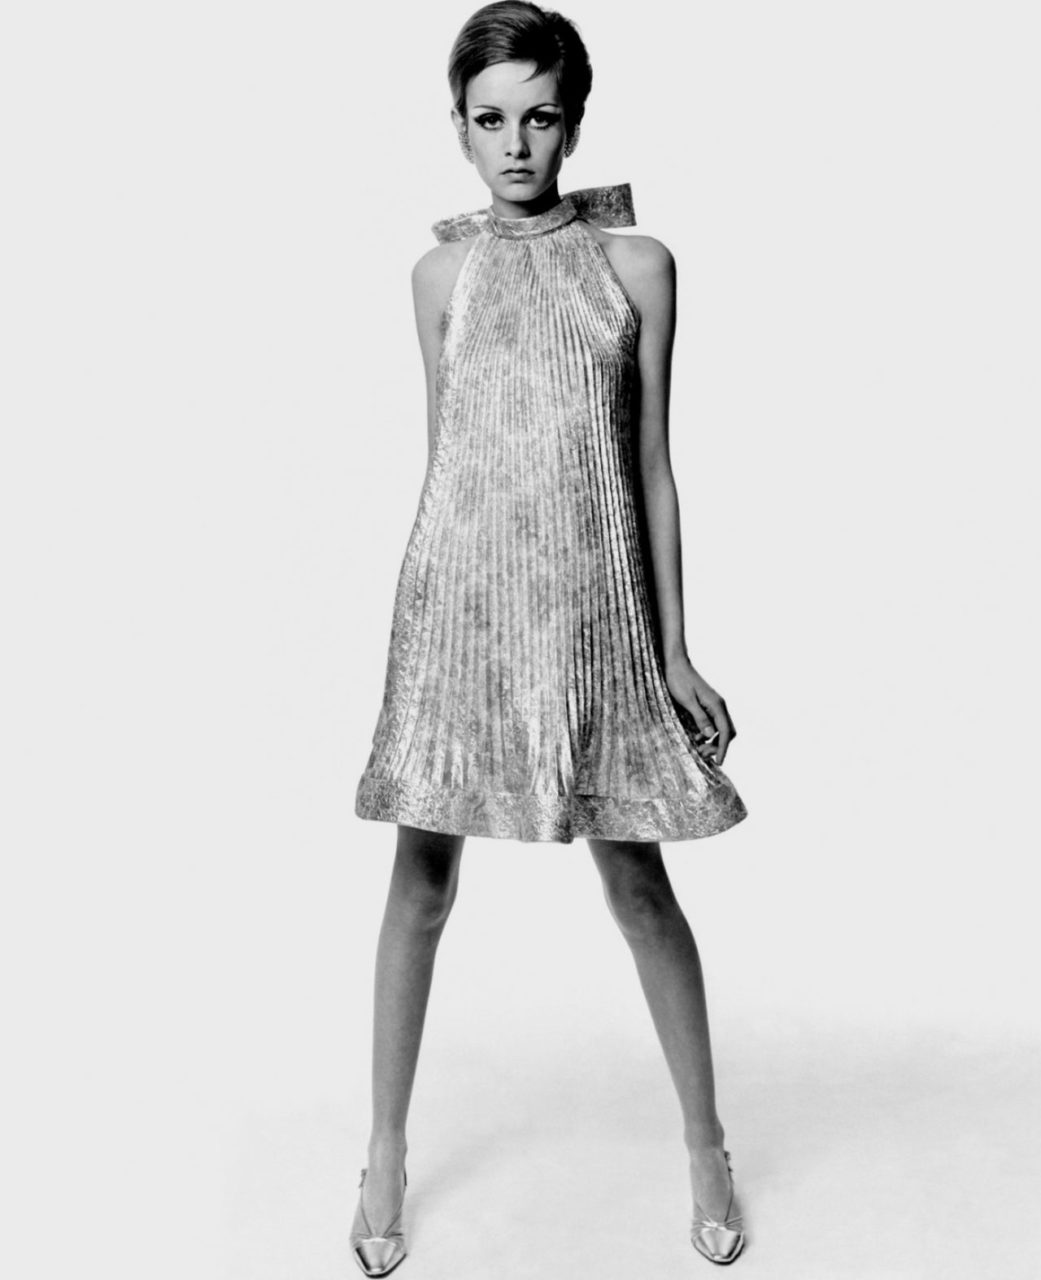 Twiggy is wearing Pierre Cardin